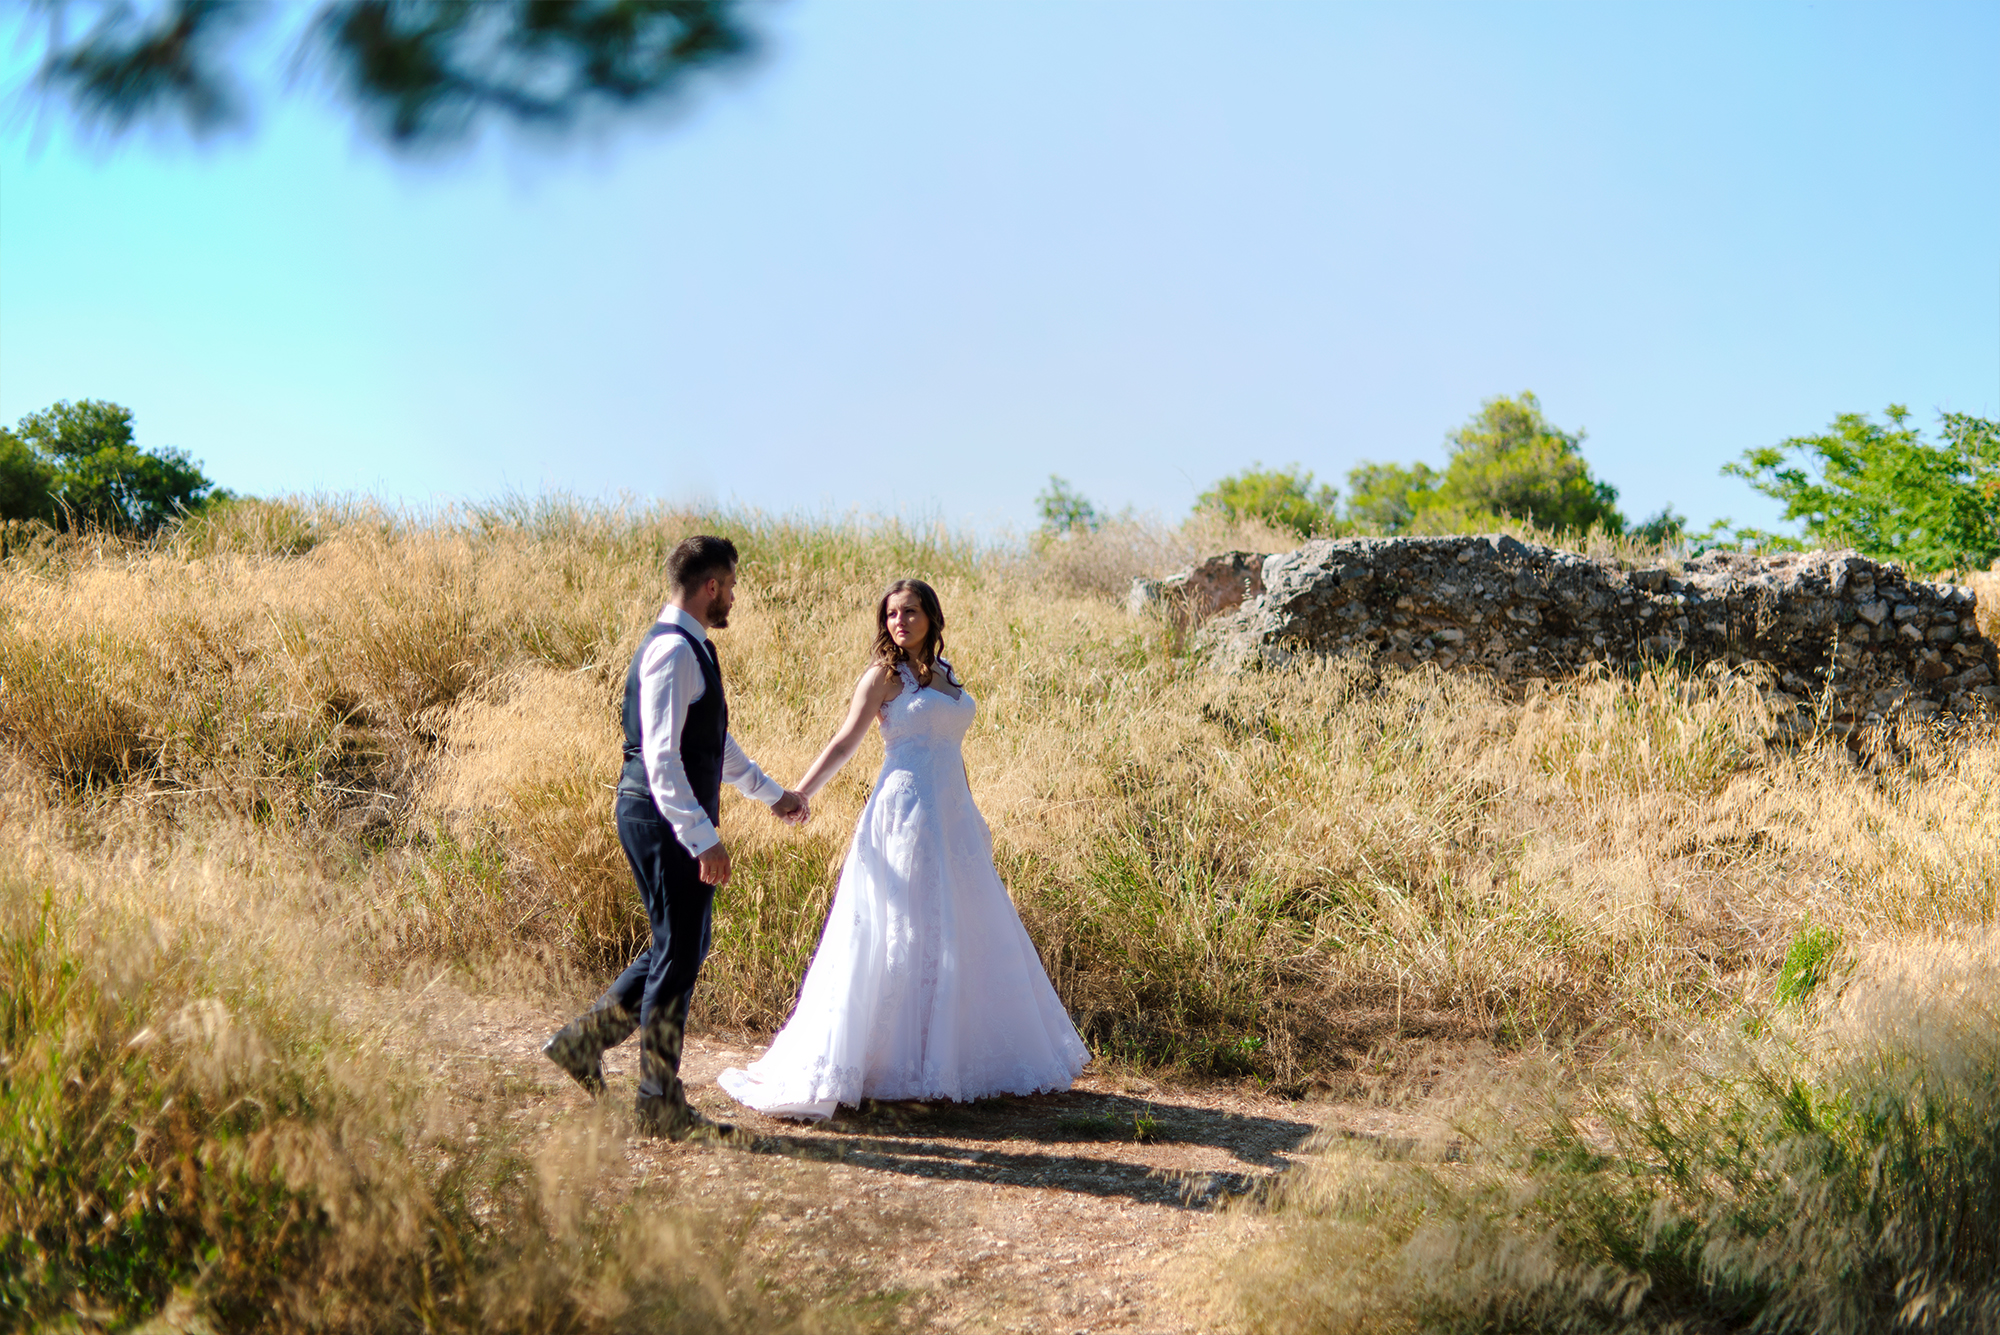 ANNA & VASILIS, WEDDING IN ATHENS AND NAFPLIO  Vasilis and Anna got married in Athens on a beautiful sunny day. They have been known each other since they were kids and that is why they can almost communicate by looking in each other's eyes. Who could have known that after so many years, they would get married and share a life together…